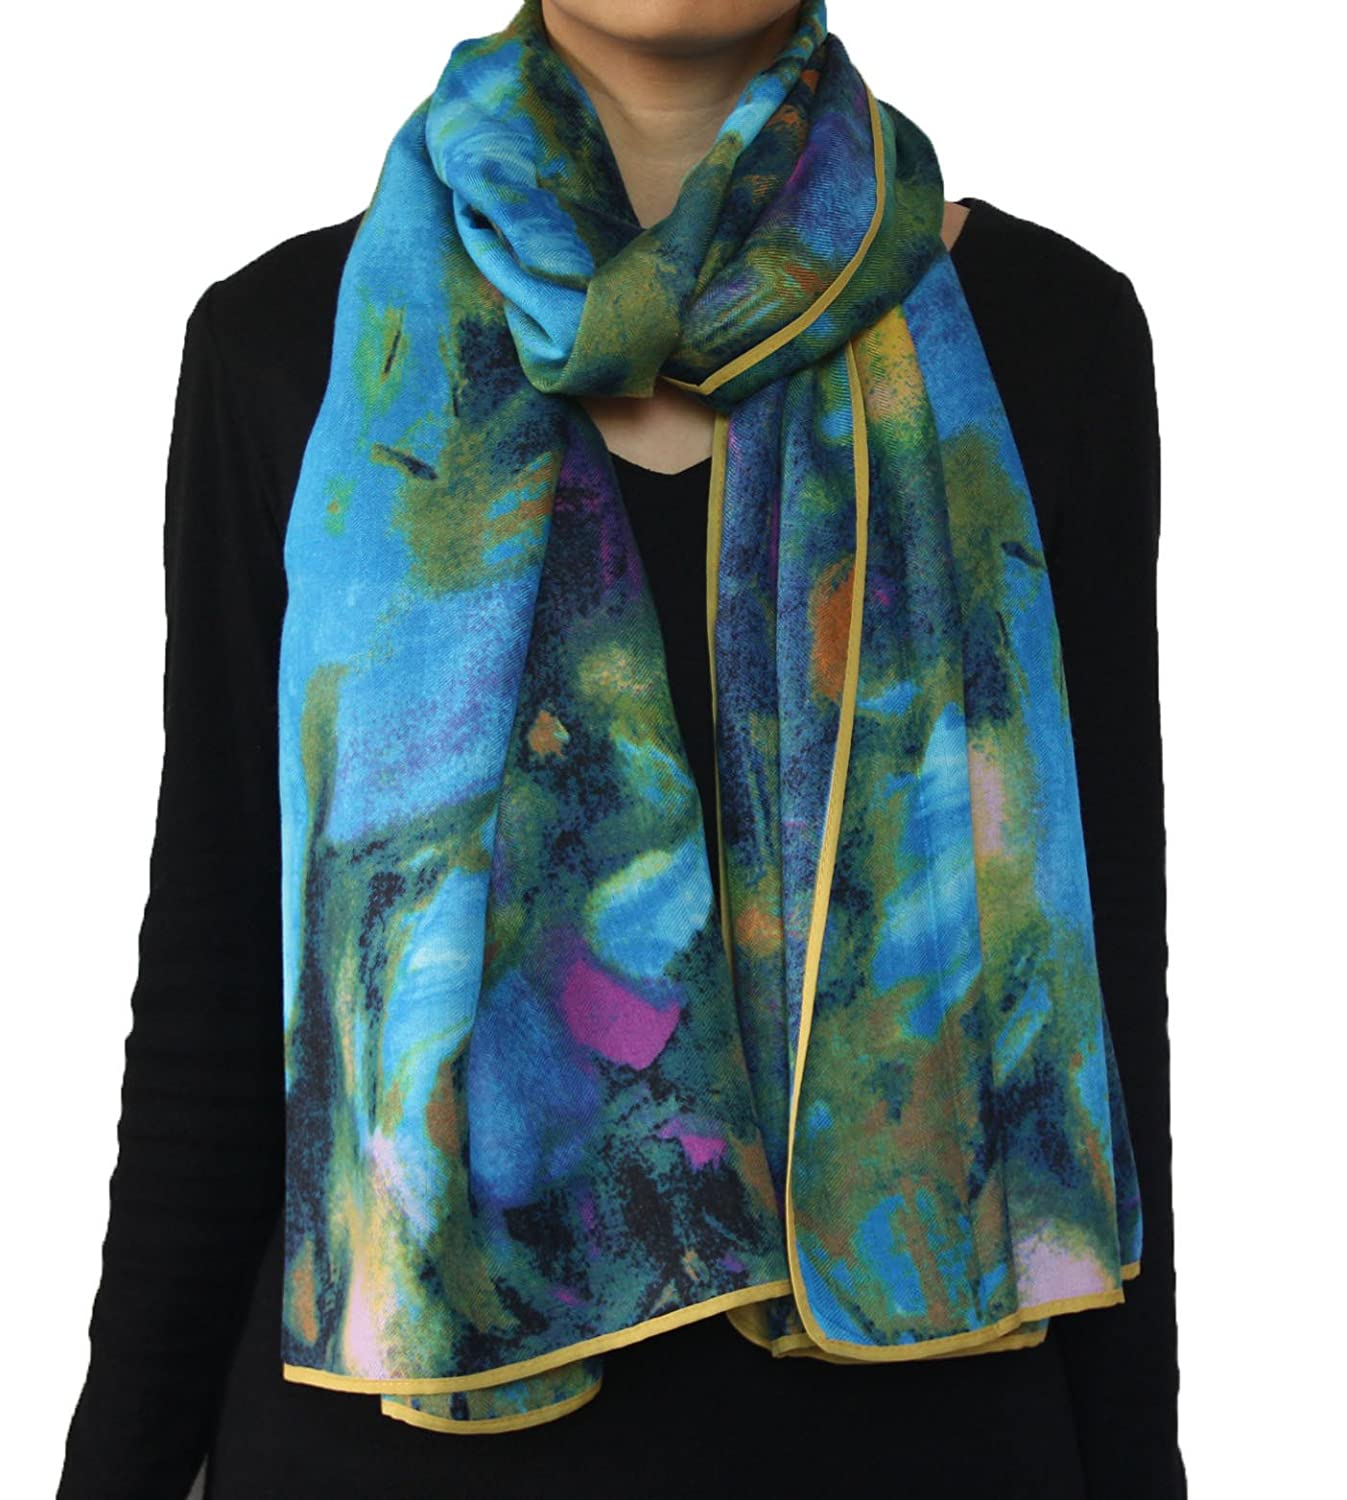 Abstract Artistic Color Block Printed Large Scarf Shawl blue